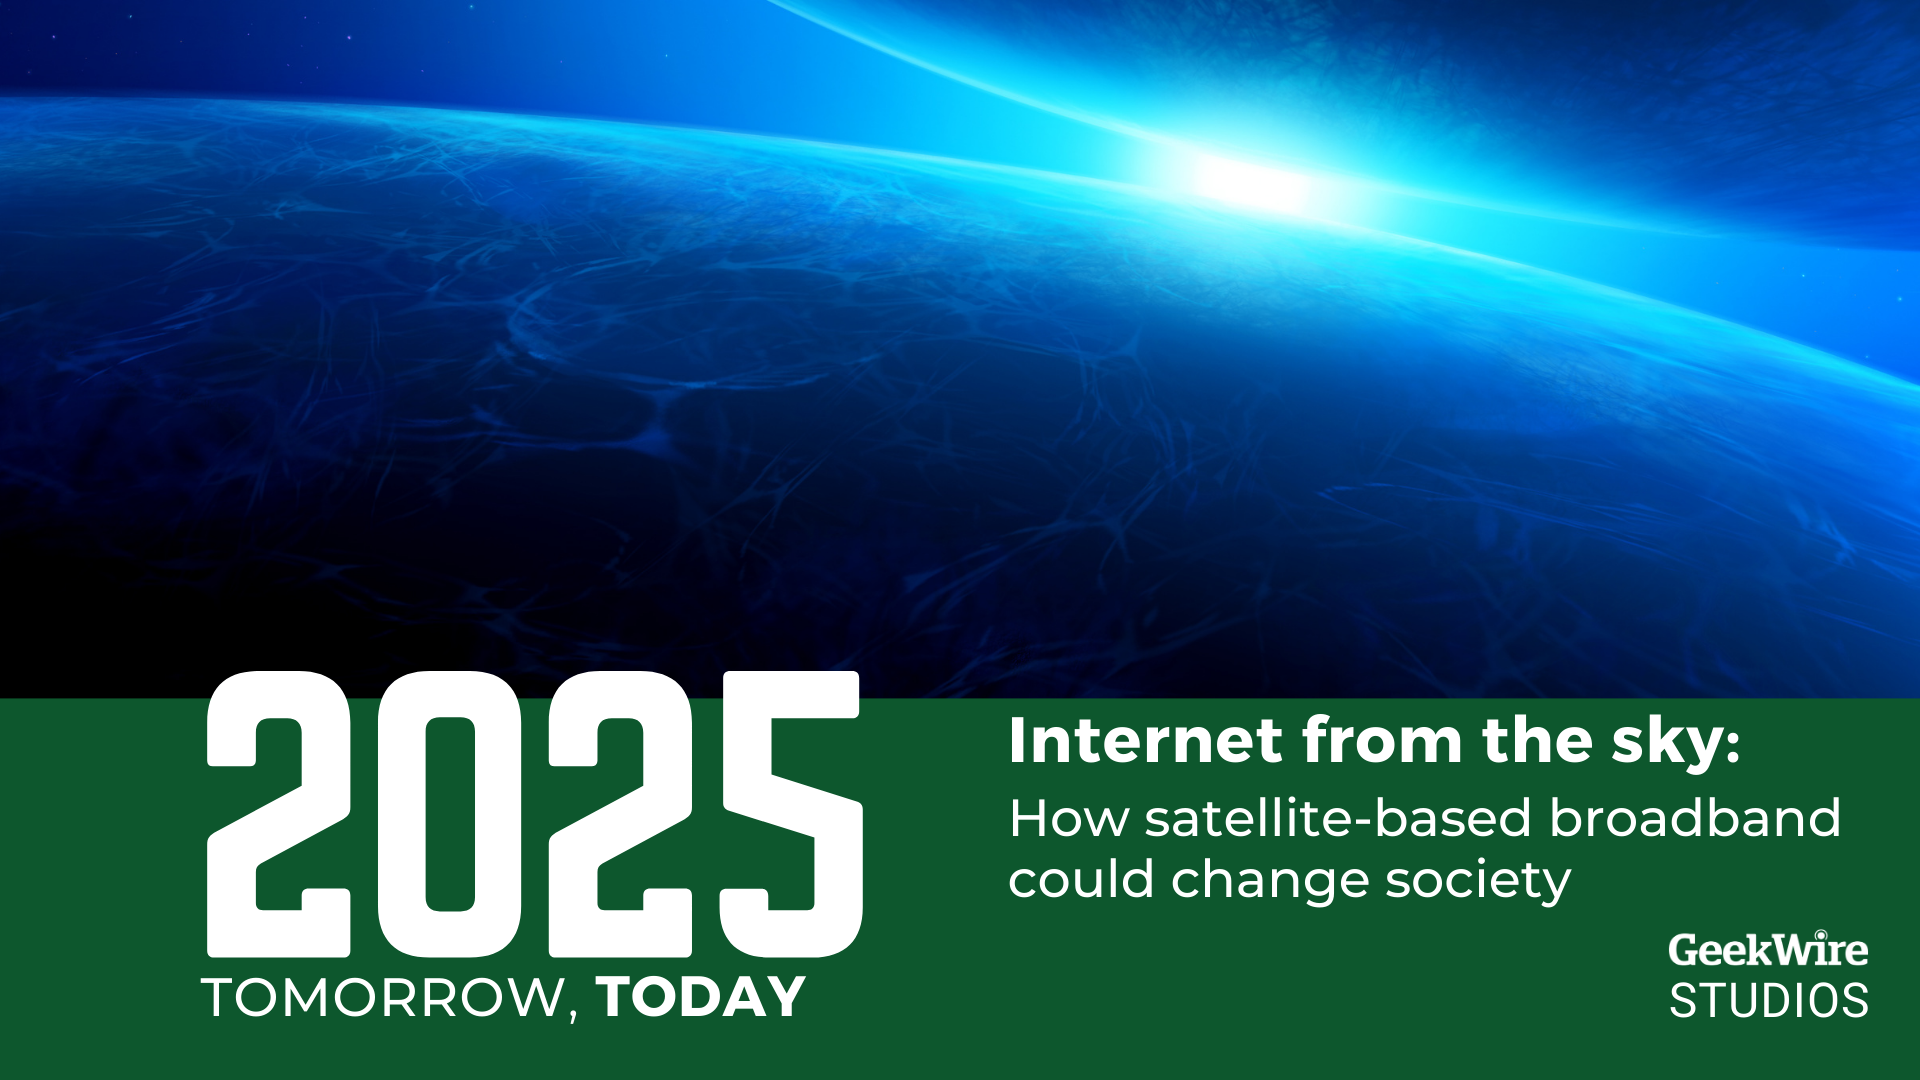 How Starlink, Project Kuiper and other satellite broadband providers could change society